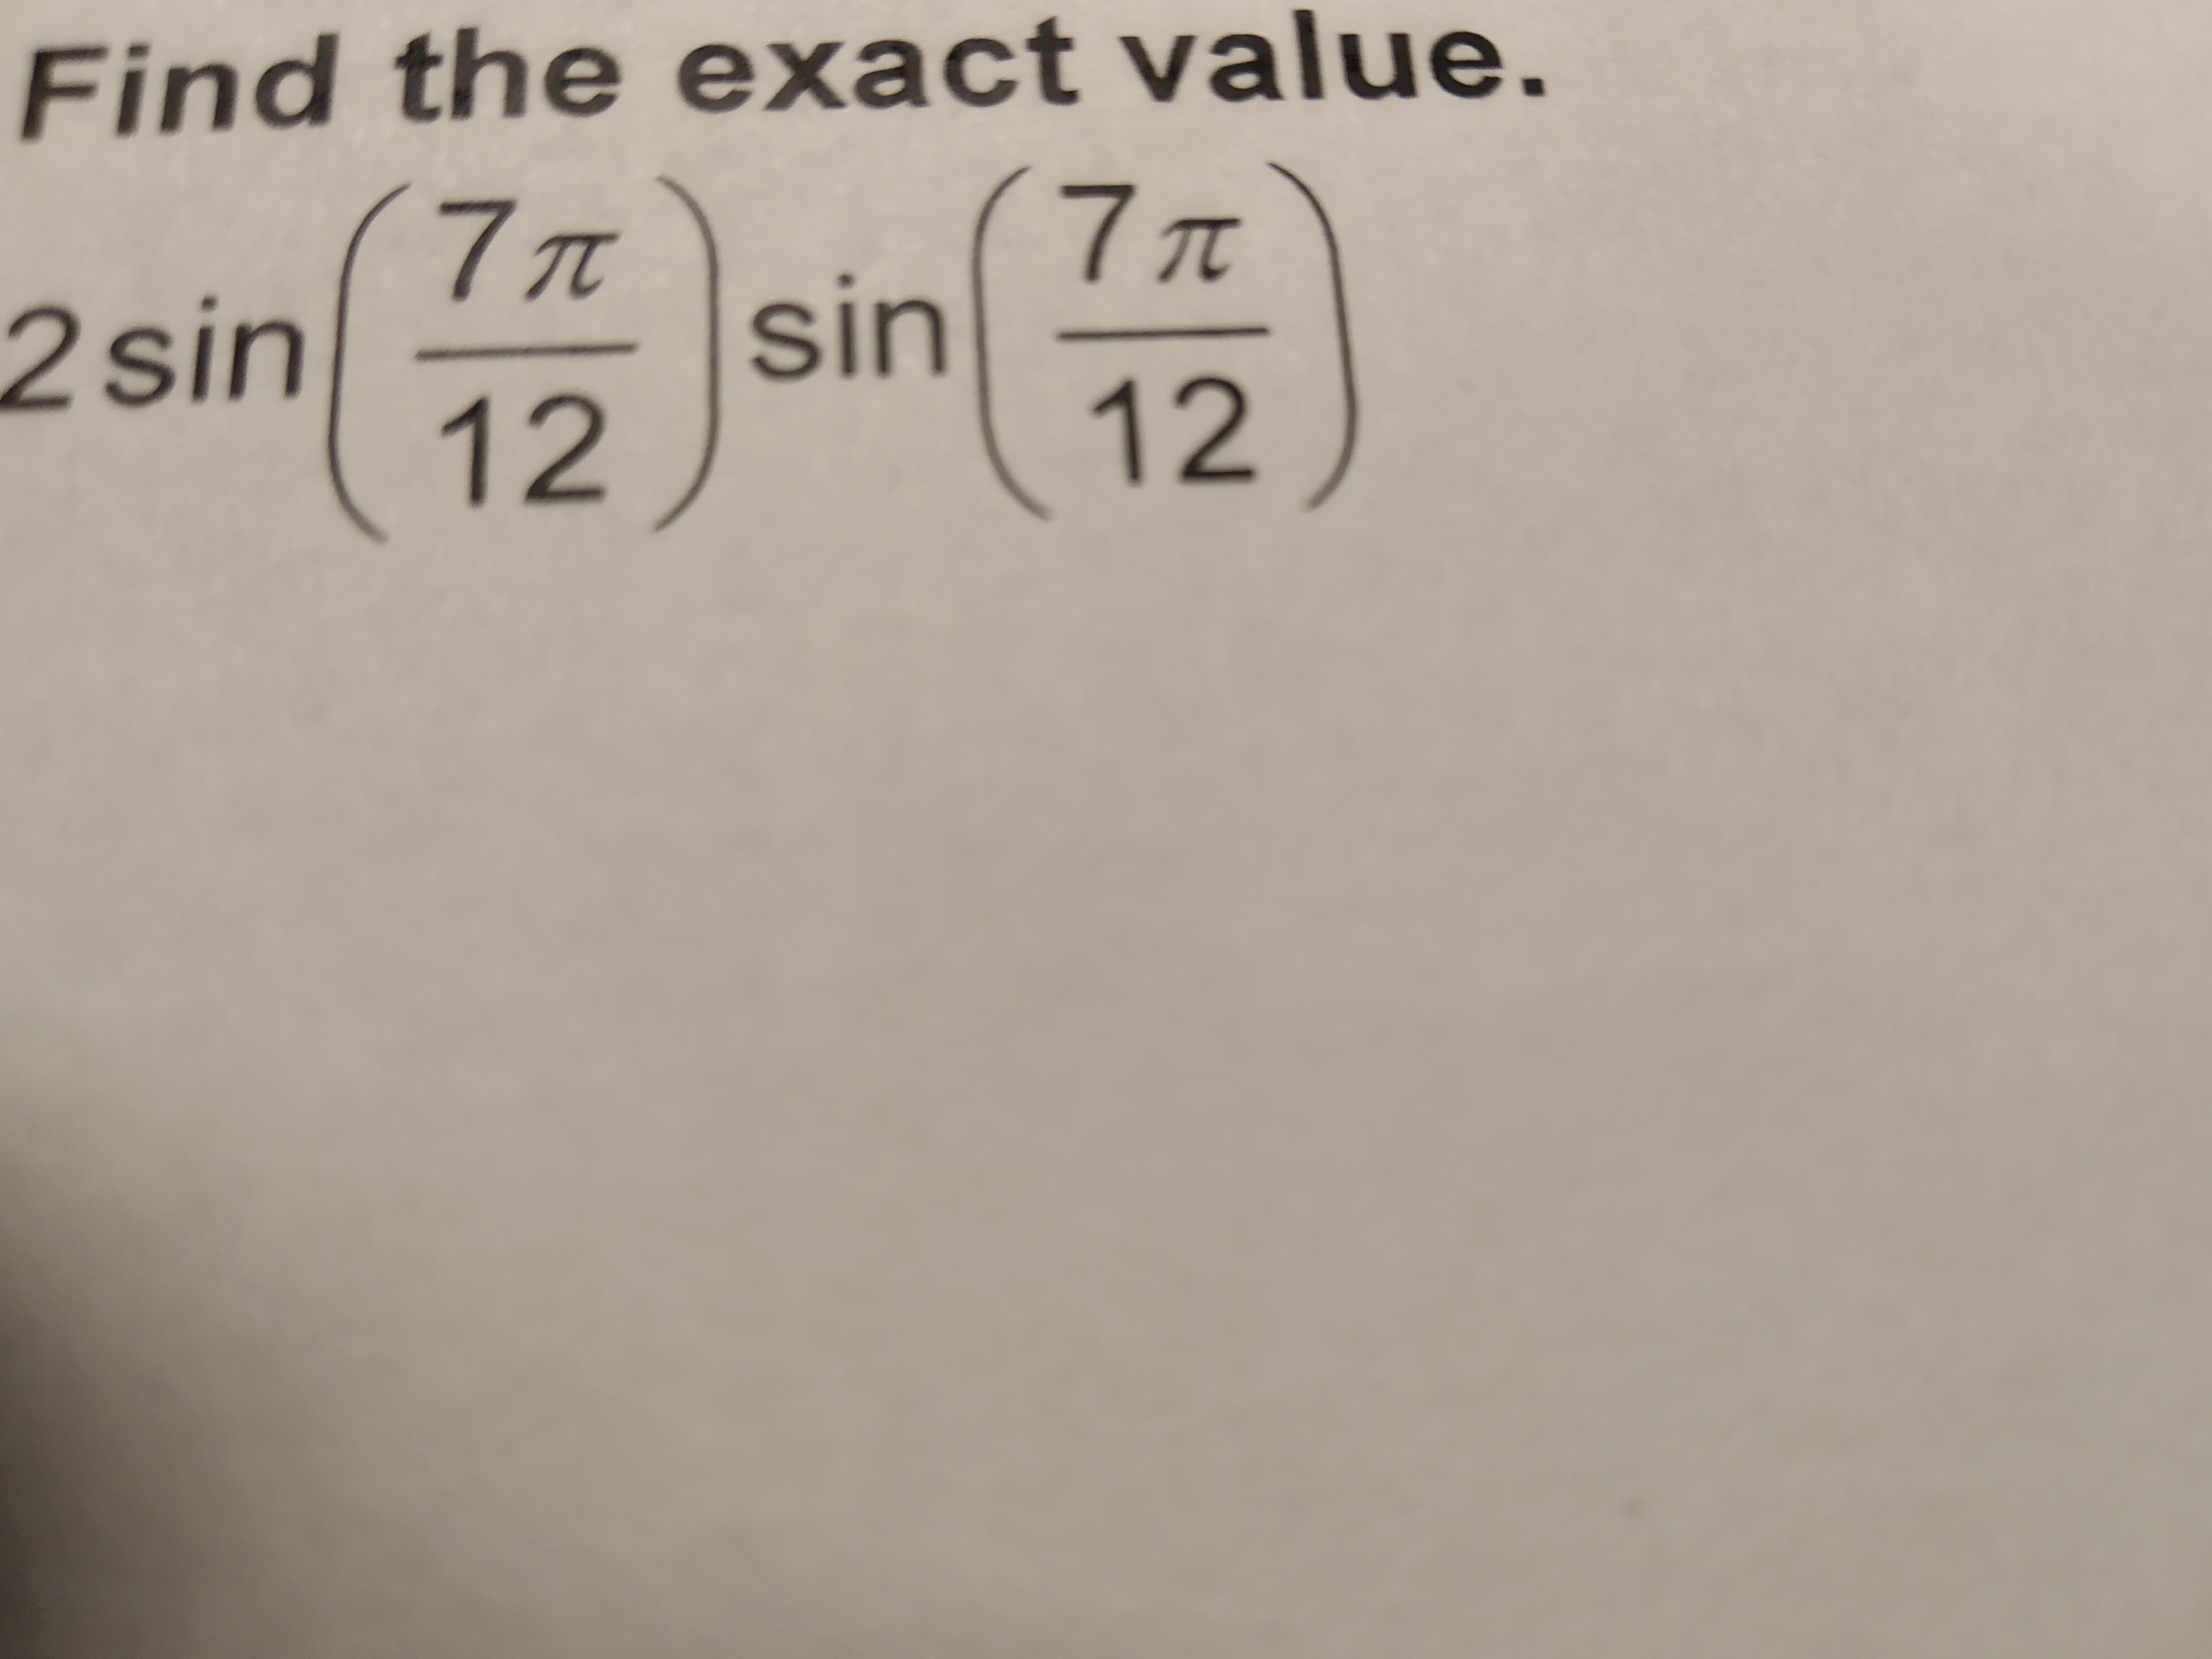 Find the exact value.